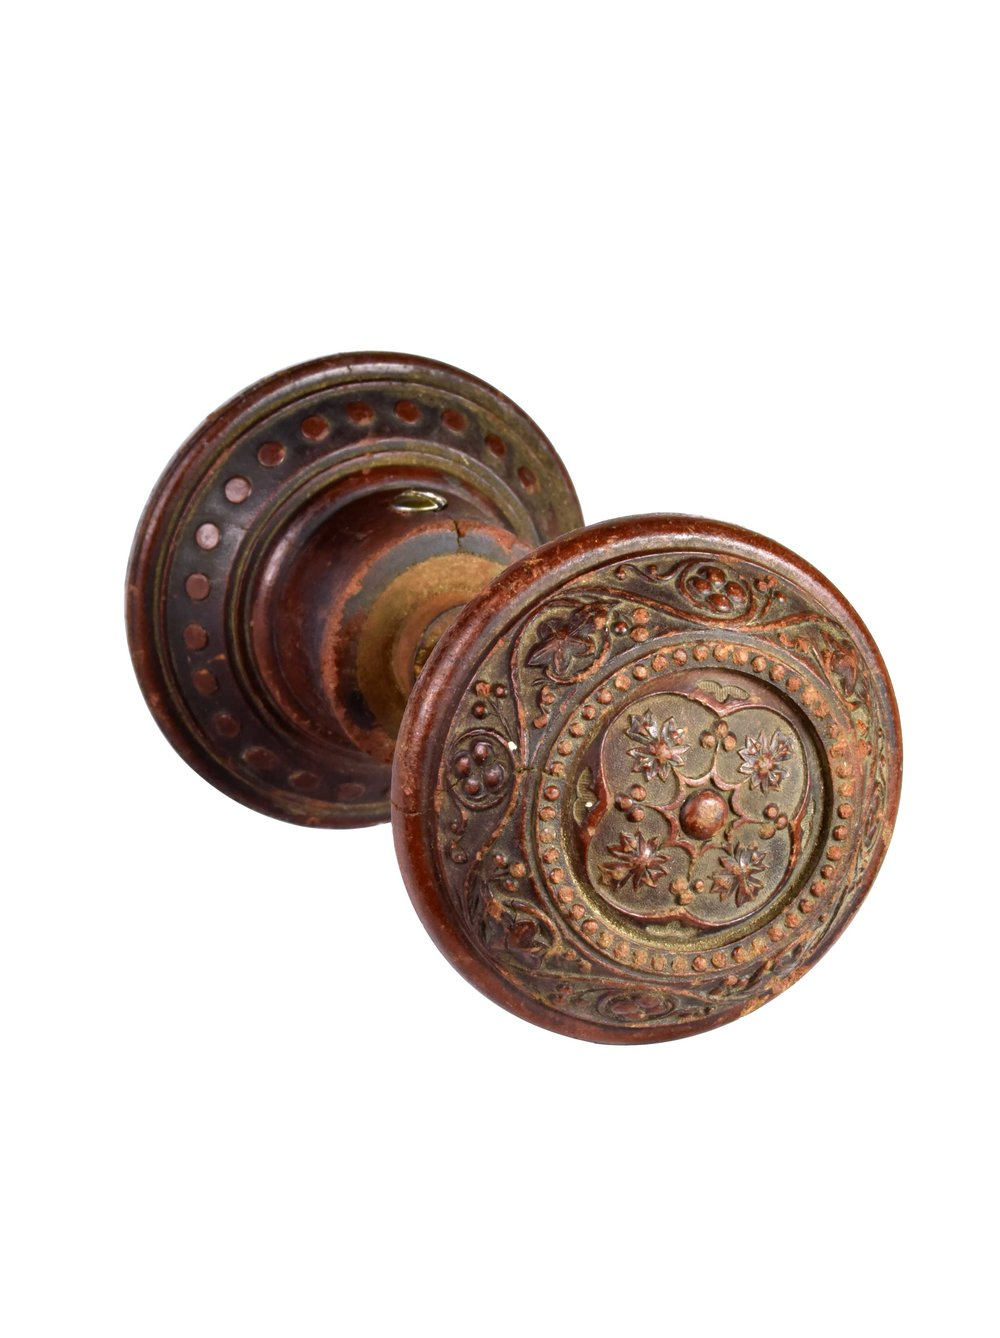 RUSSELL AND ERWIN COMPOSITE KNOB SET AA# H20214   1 set available $245.00 for set